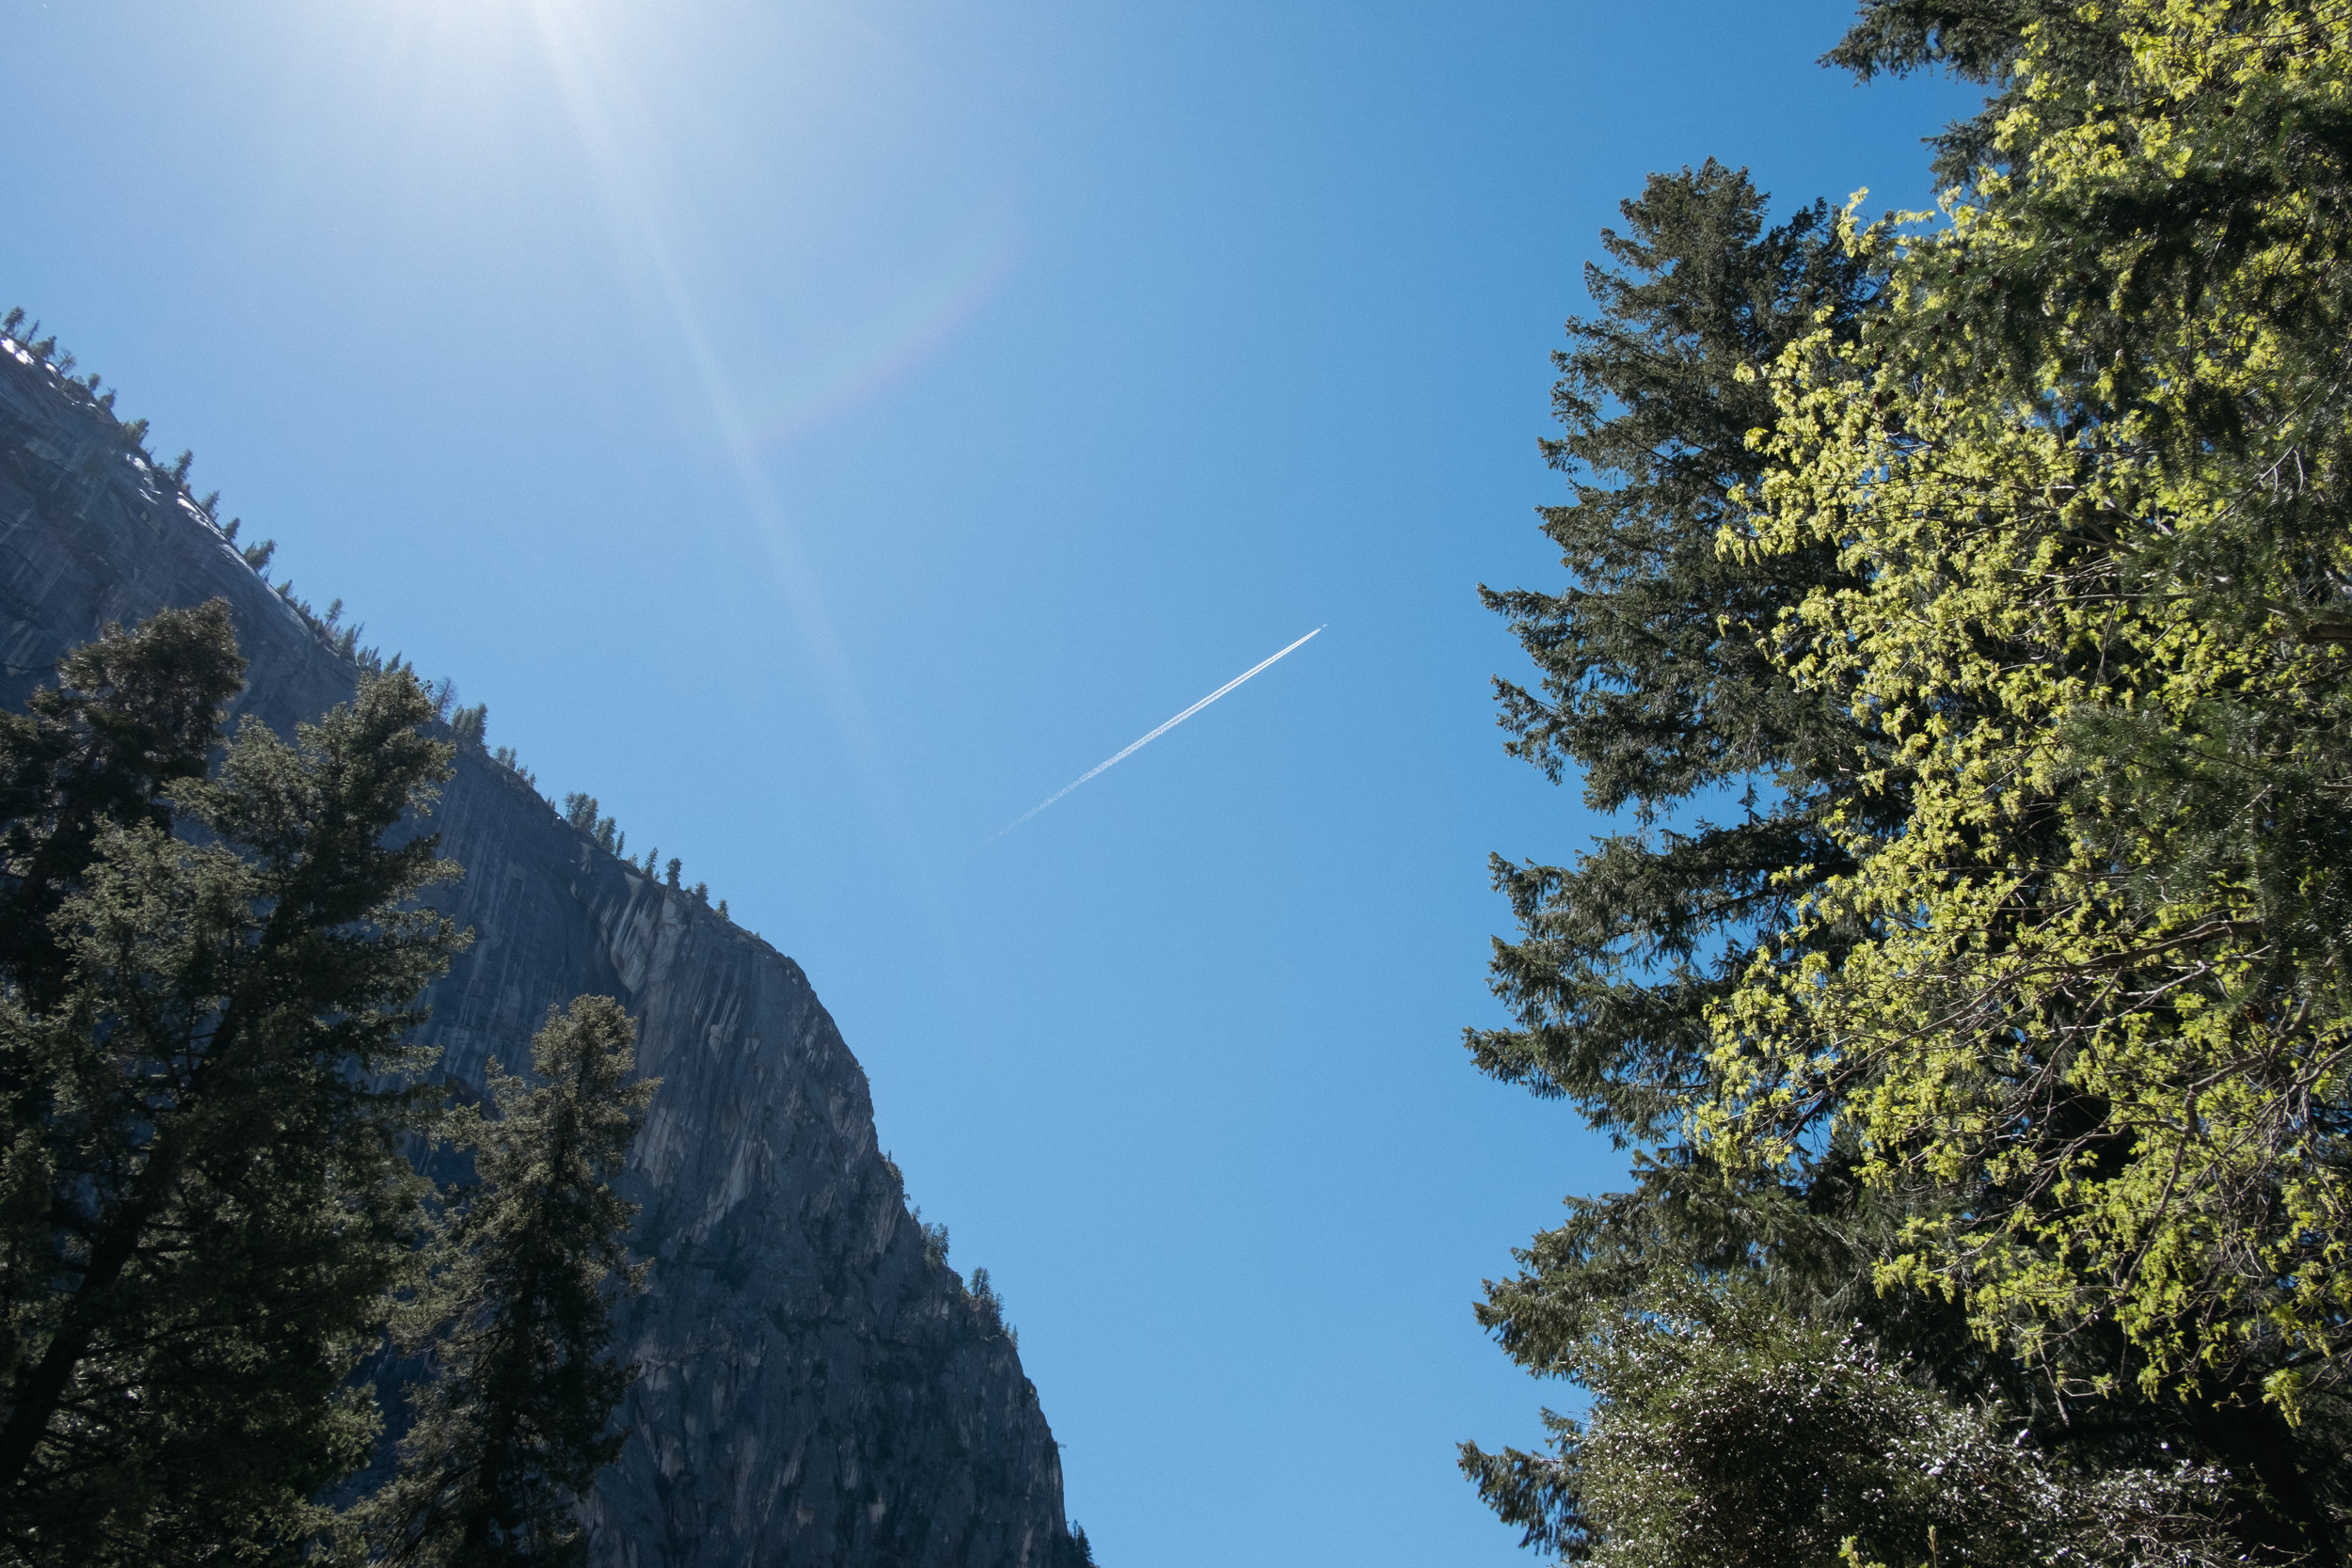 The sky in Yosemite National Park